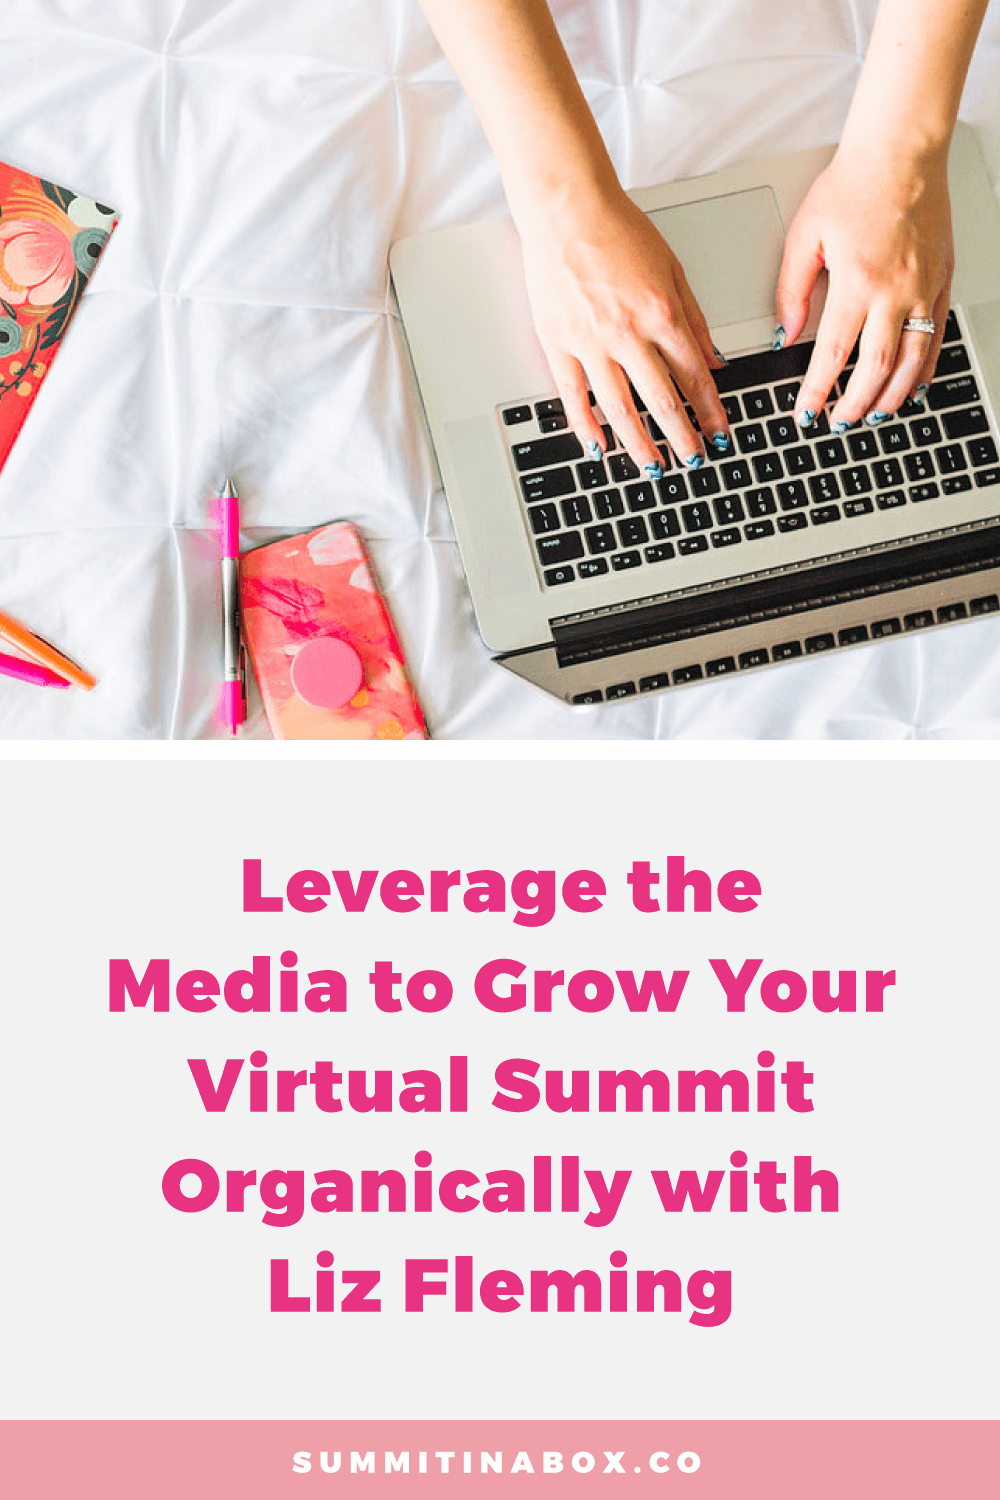 Learn to leverage the media to organically gain traction for your virtual summit whether you already have media connections or PR has been on your to-do list.